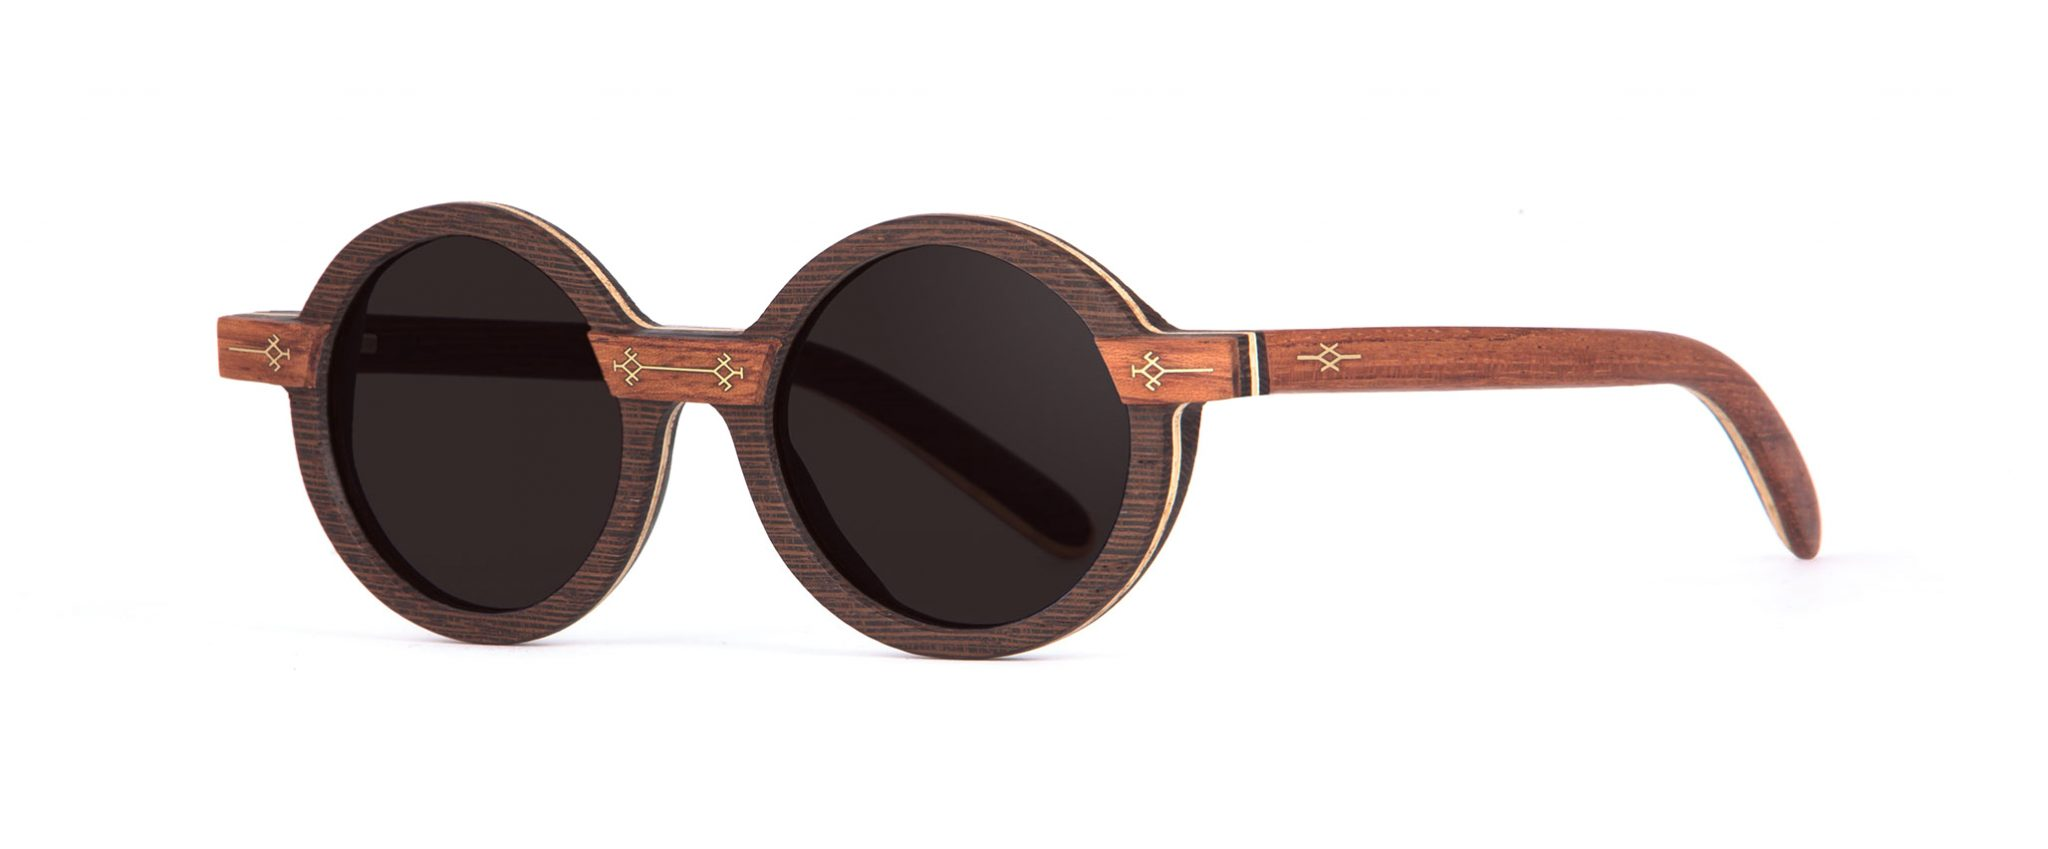 https://vakayeyewear.com/wp-content/uploads/2017/03/dihya-wenge-wood-round-designer-sunglasses-vakay-with-gold.jpg